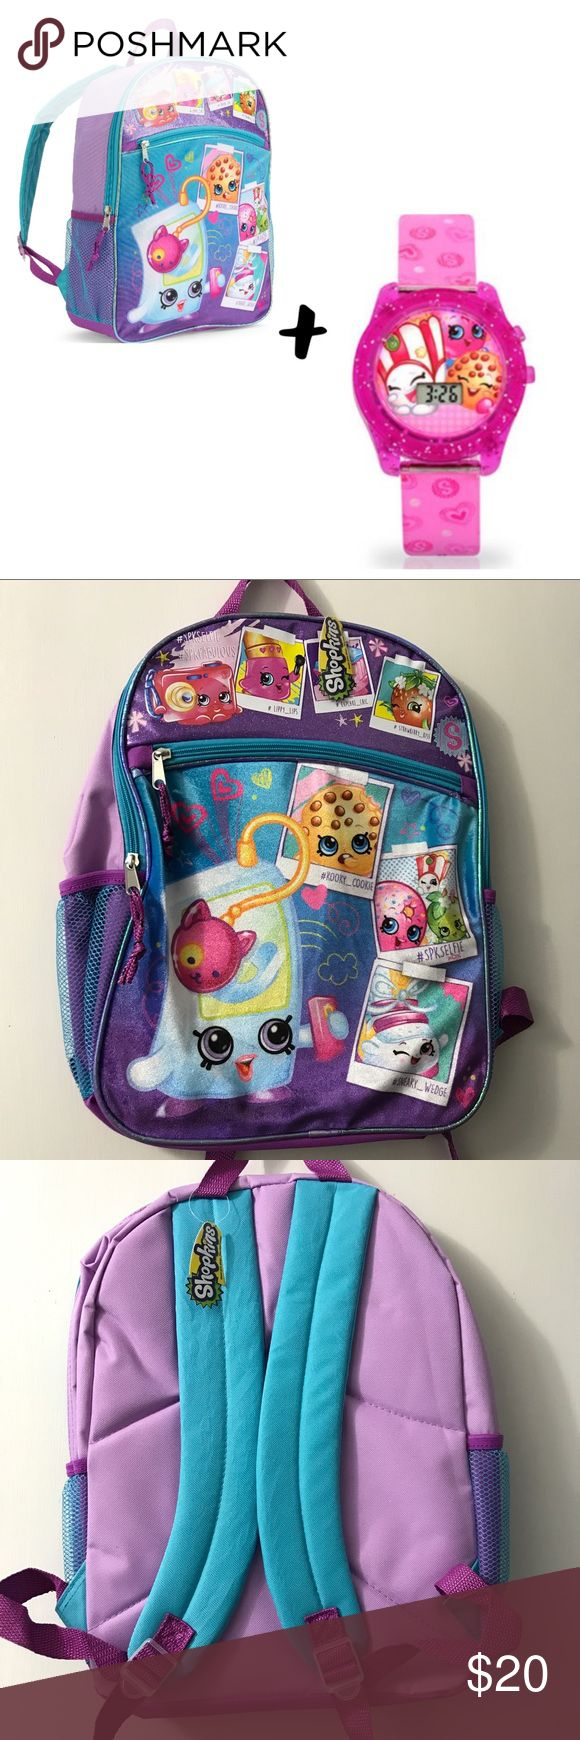 💫BOGO Just Listed NWT🌷SPRING Shopkins Bundle🎒⌚️ New Girls Shopkins Backpack and Watch Bundle.  Brand New w Tags.  Buy one Backpack get one Watch Free!! Shopkins Accessories Bags